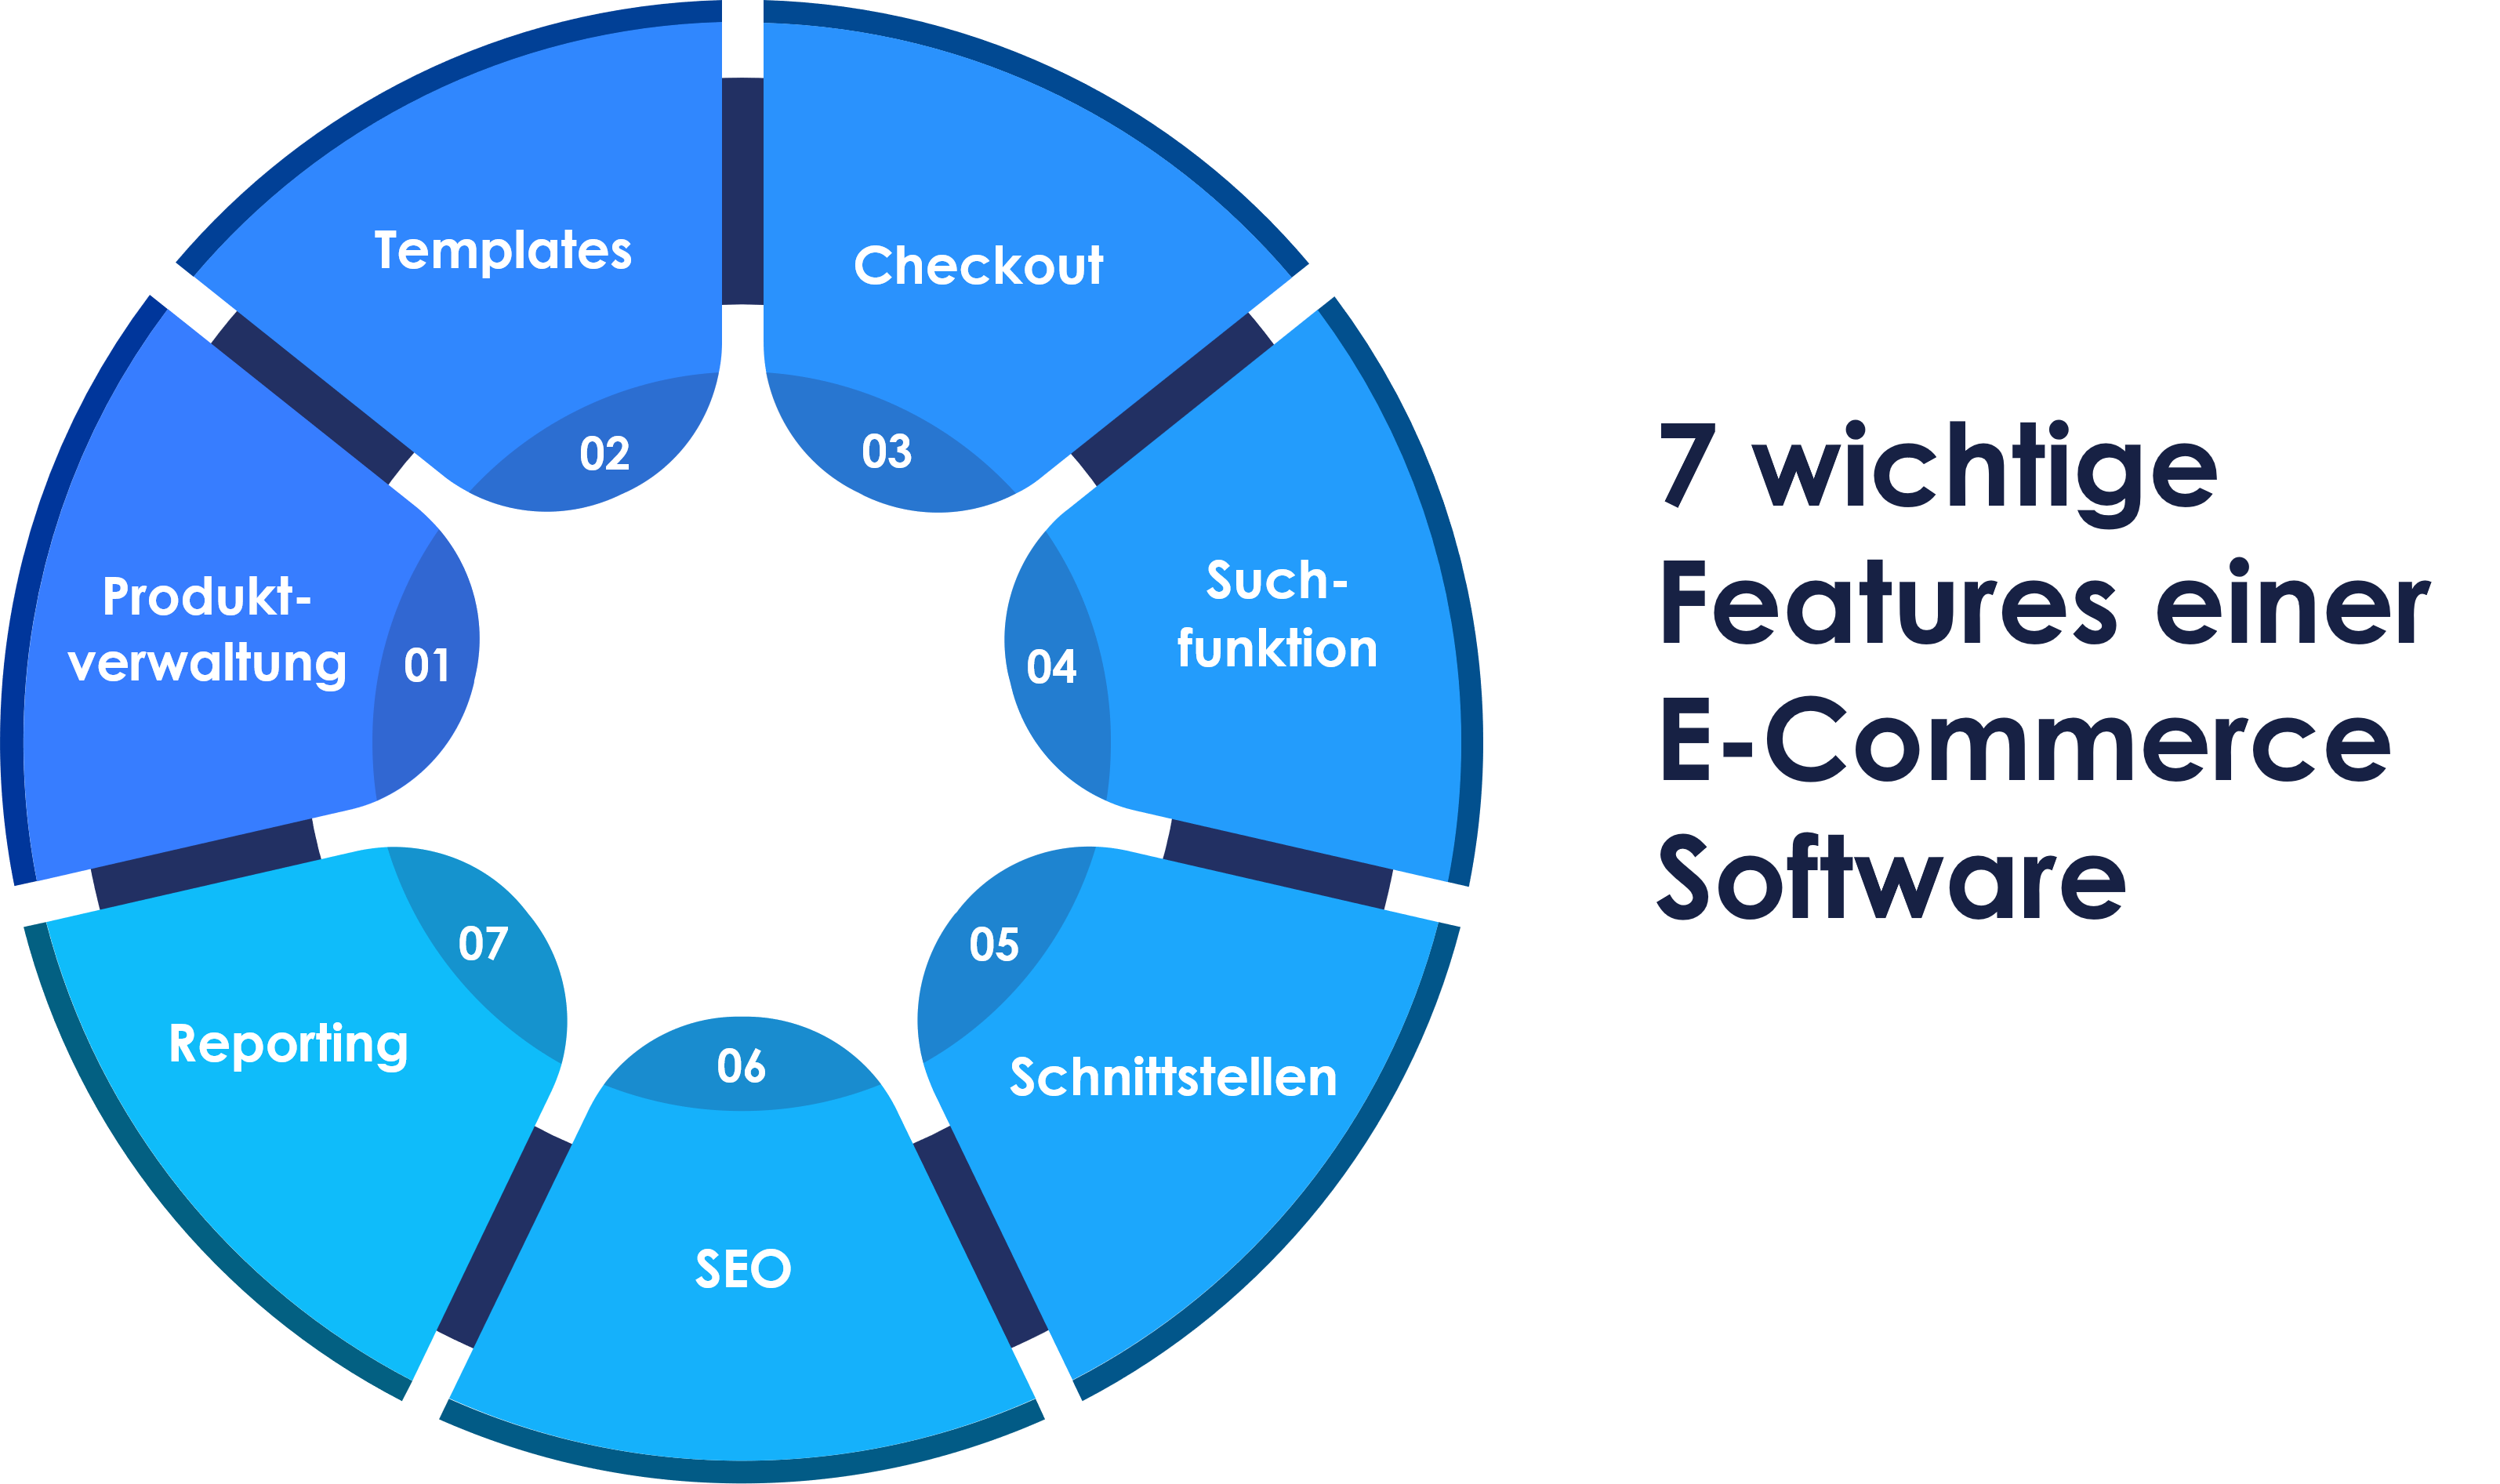 7 wichtige Funktionen einer E-Commerce Software